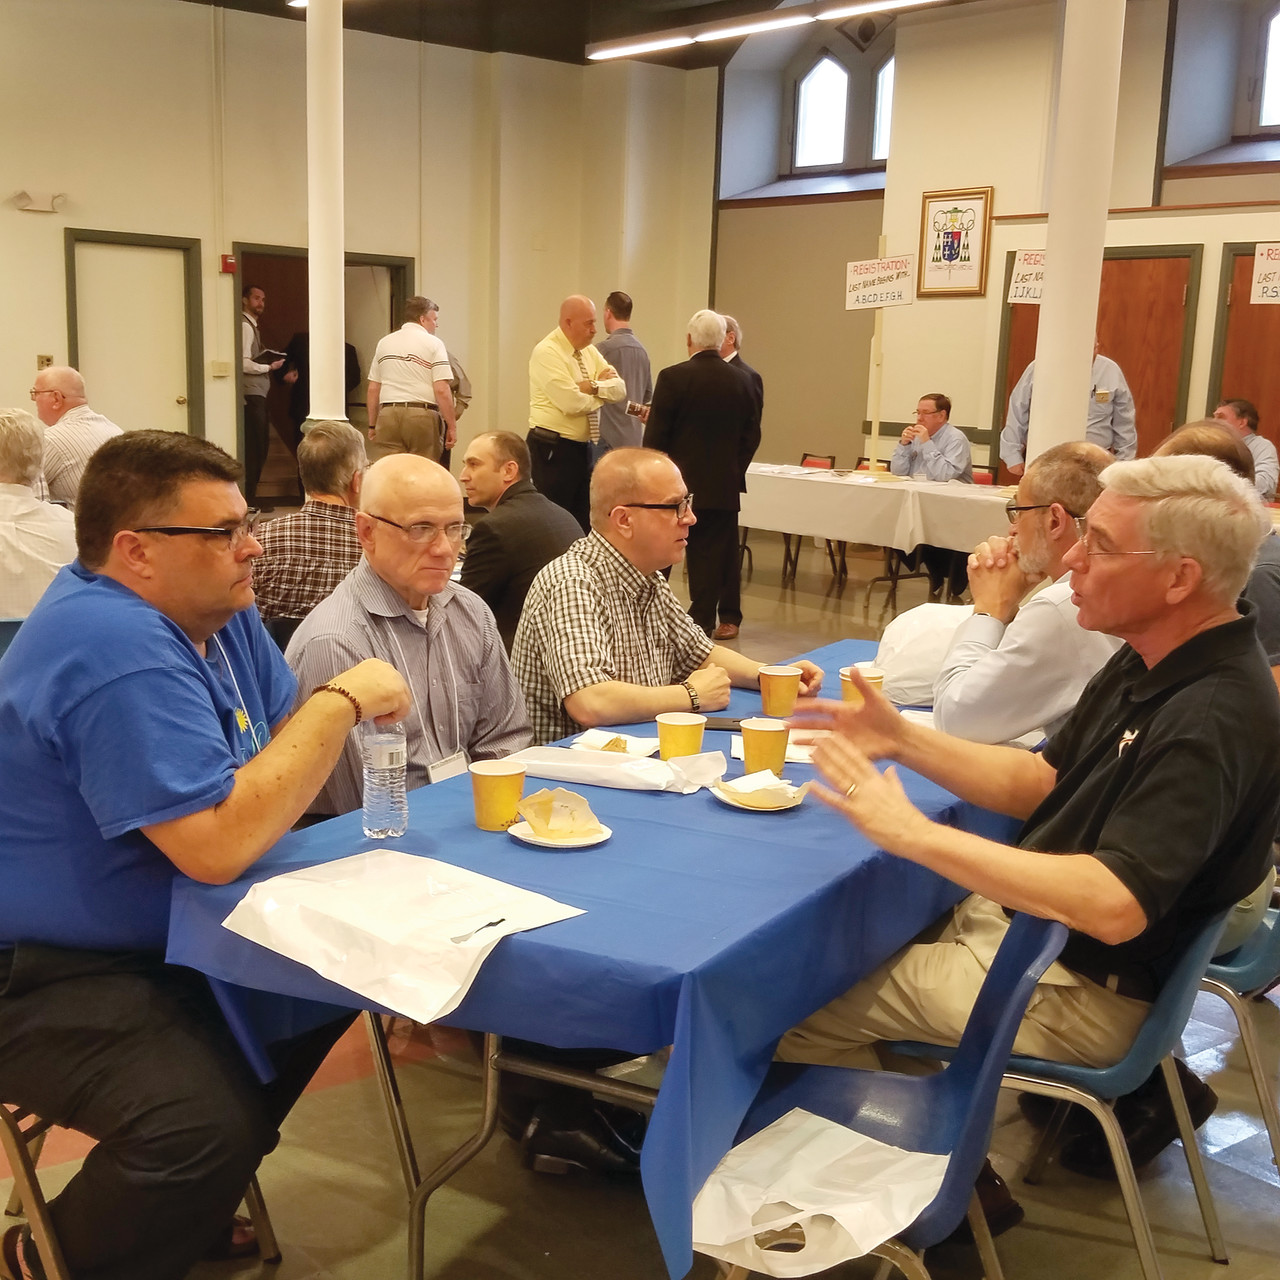 Deacon Noel Edsall, right, confers with fellow participants during a break in the annual Diocesan Men's Conference, held Saturday at the Cathedral of SS. Peter and Paul and the adjacent McVinney Auditorium.